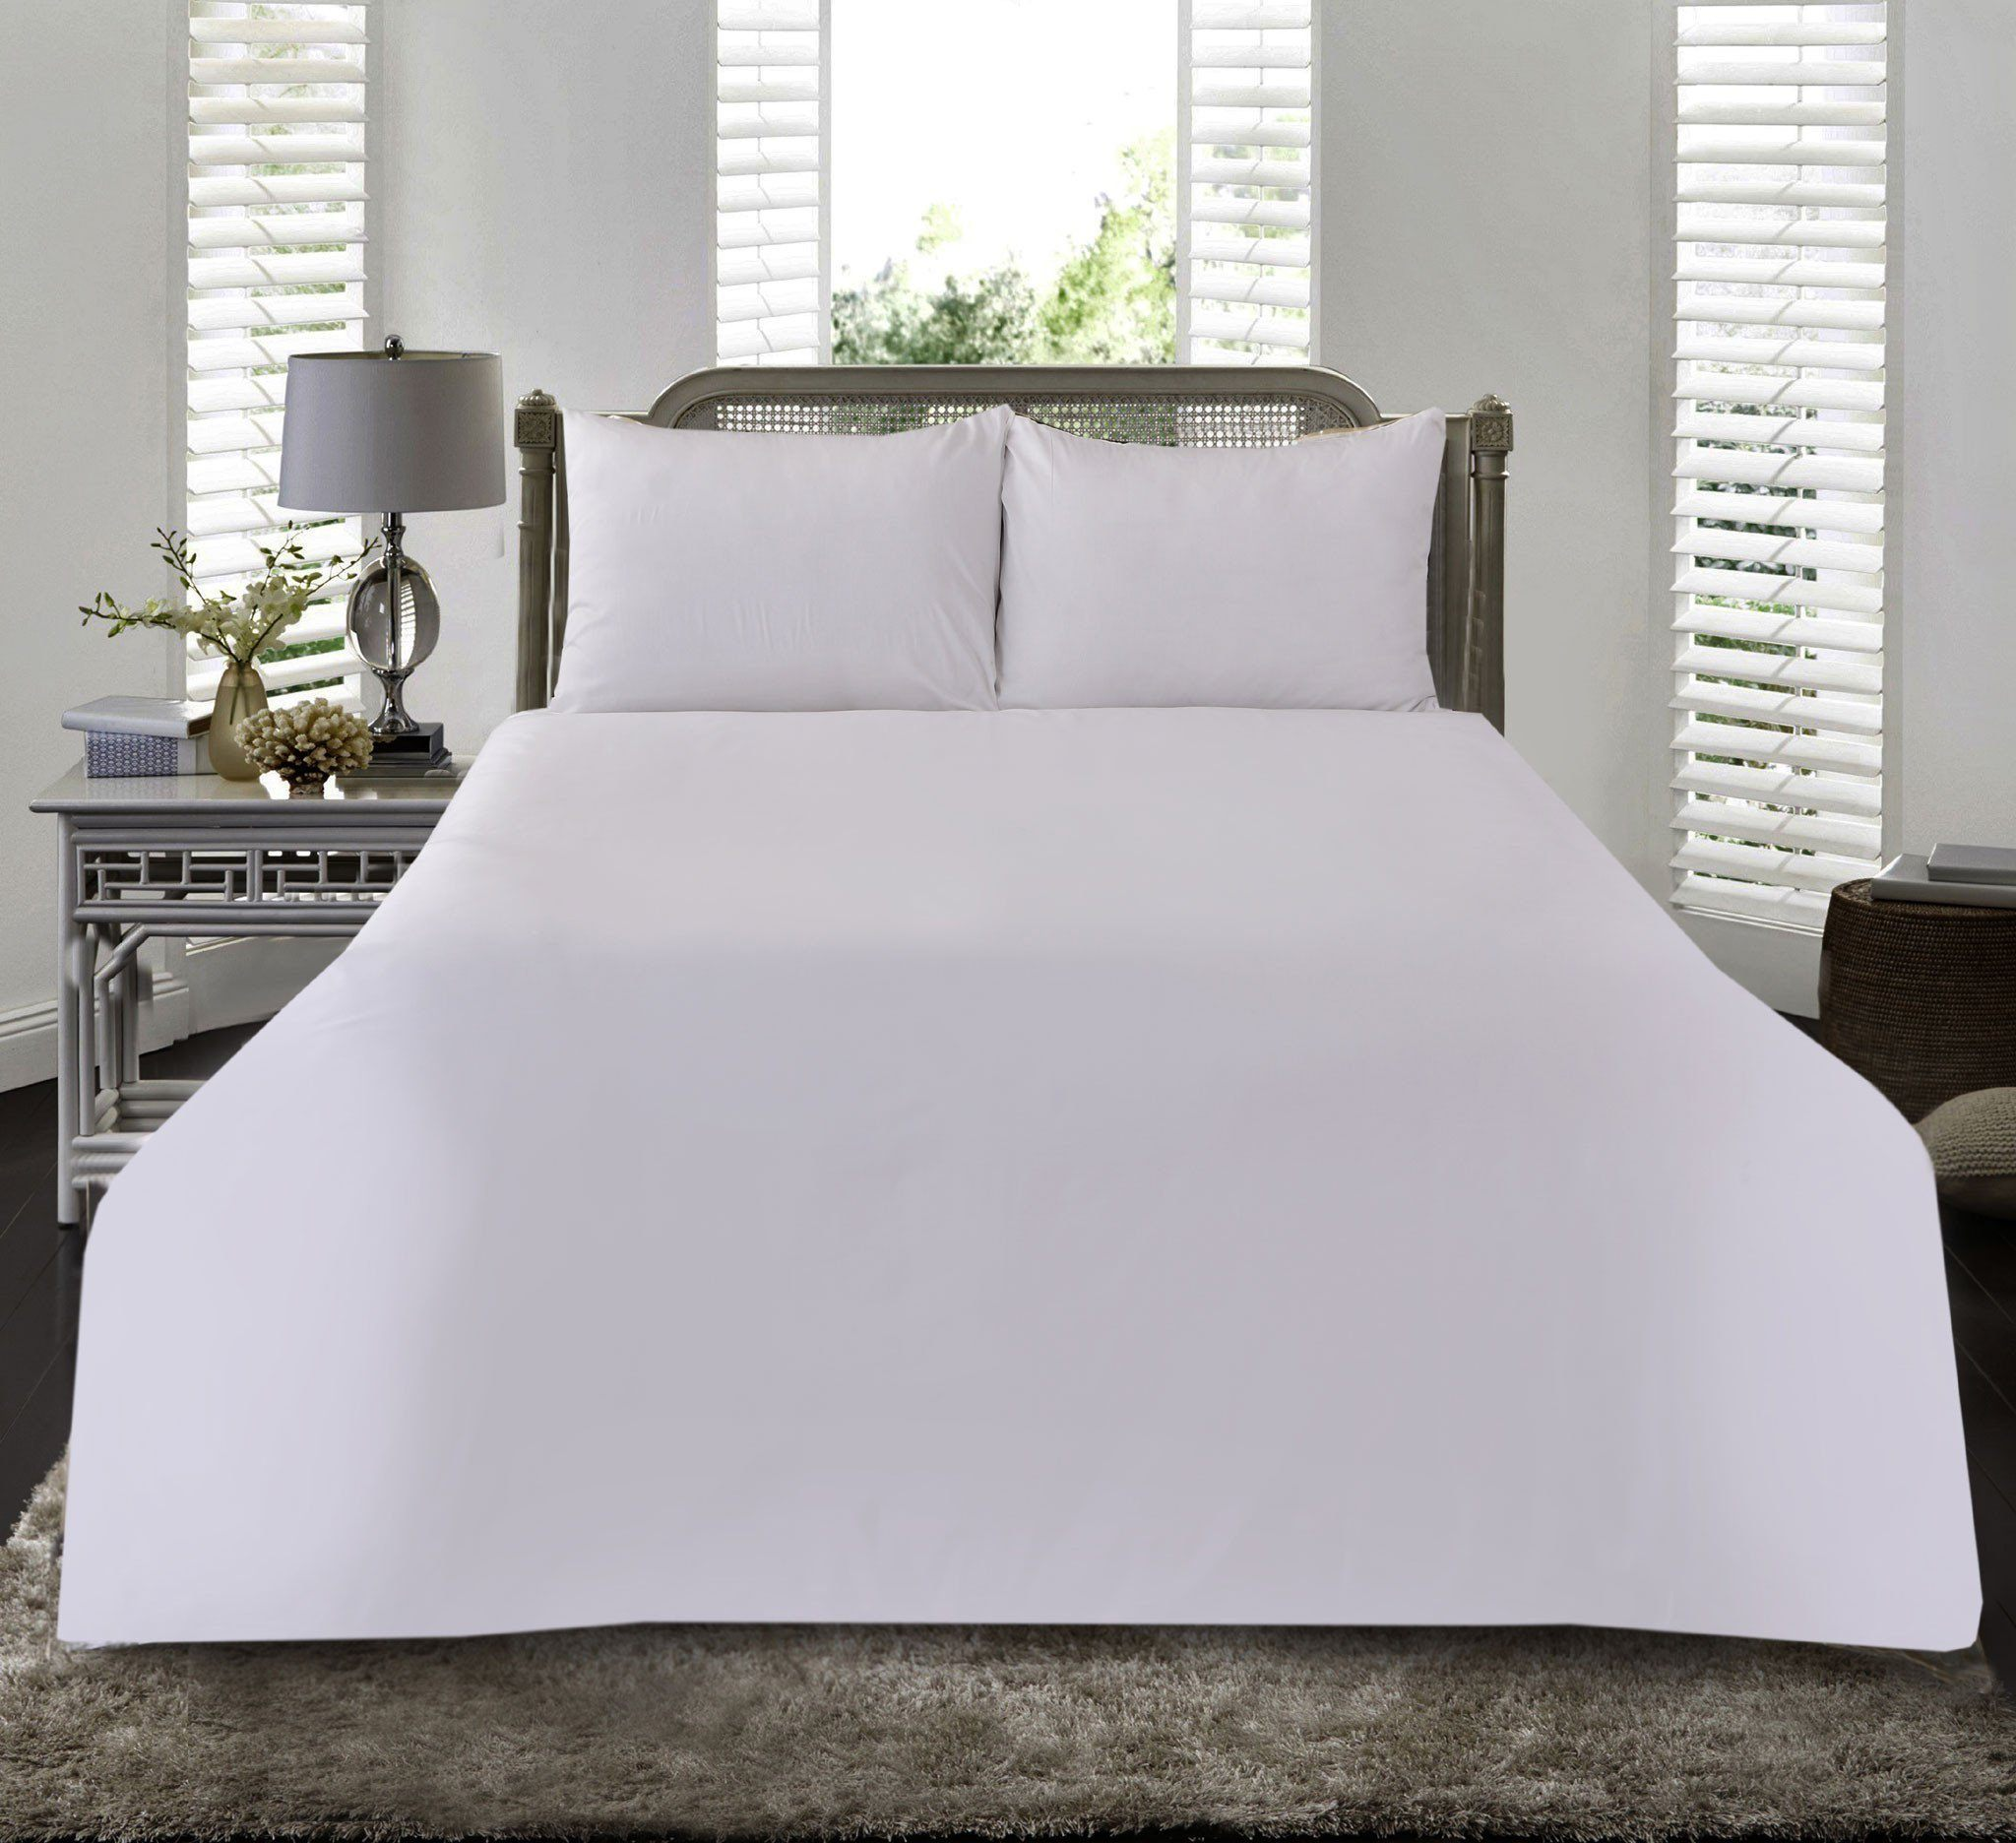 DAISY COTTAGE Bridal Bedding HOMBEDBRI BED SHEET-QUEEN